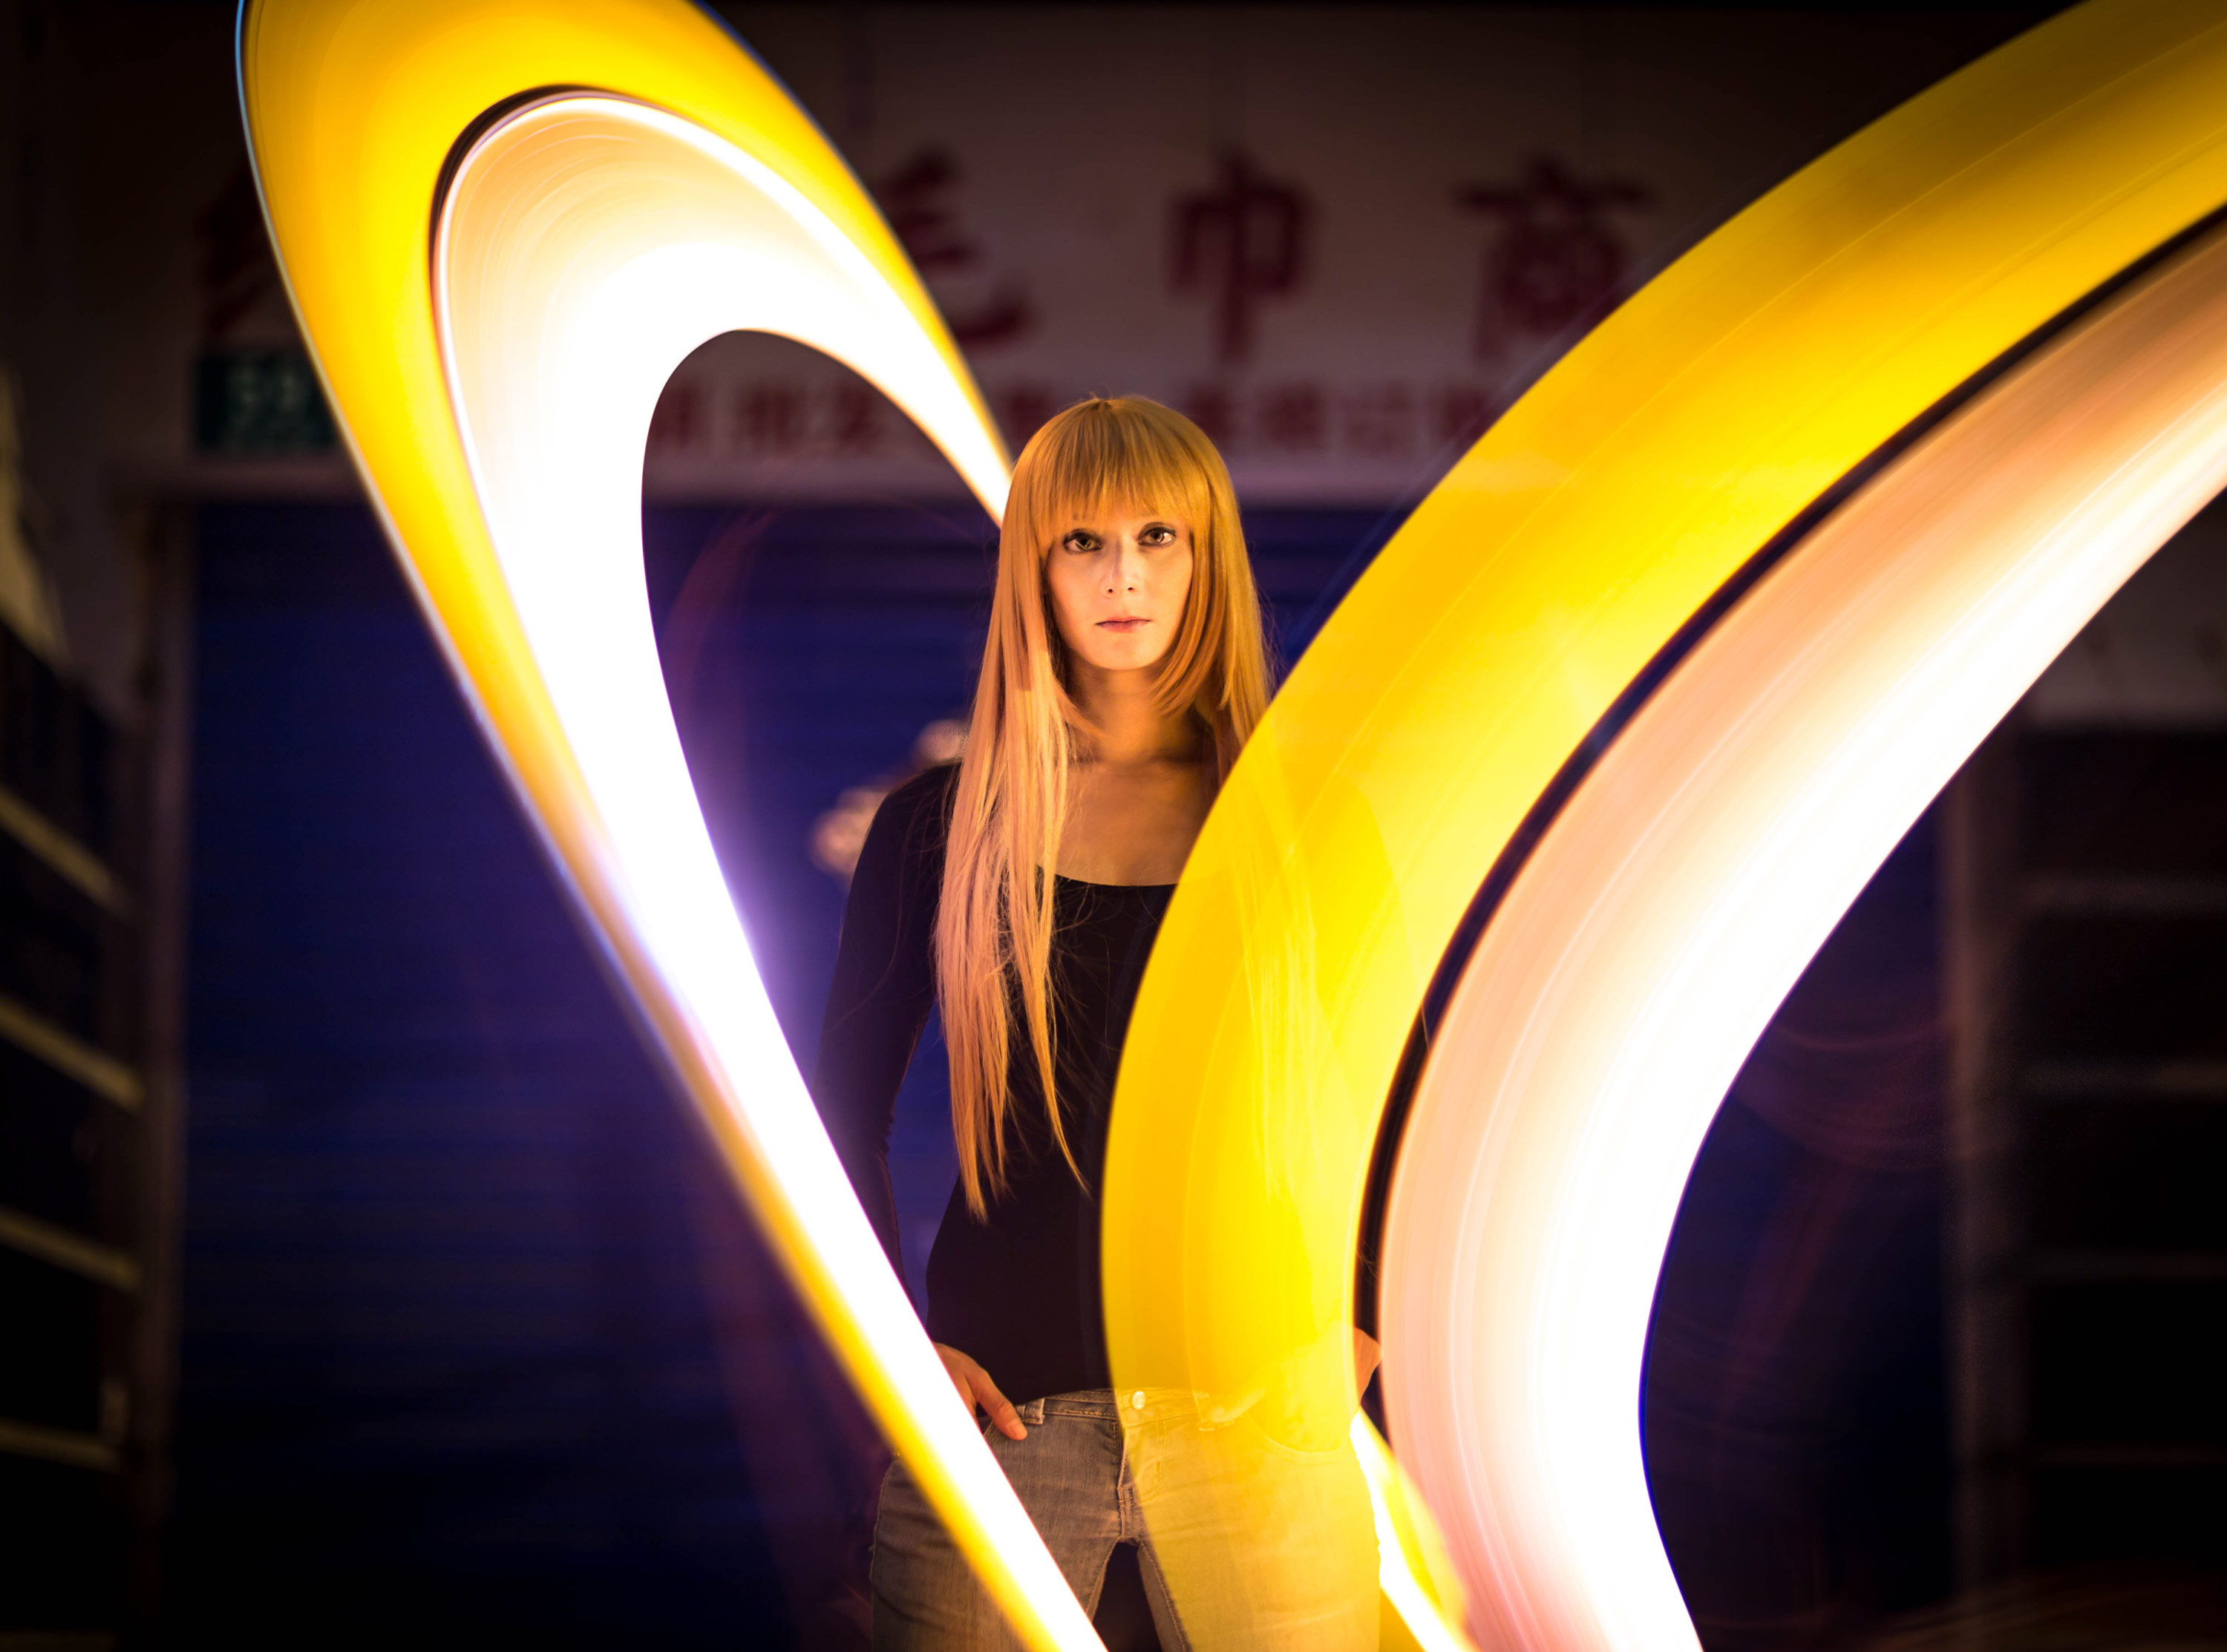 LightPainting-Gunnar-Heilmann-tube-Portrait-yello-china.jpg